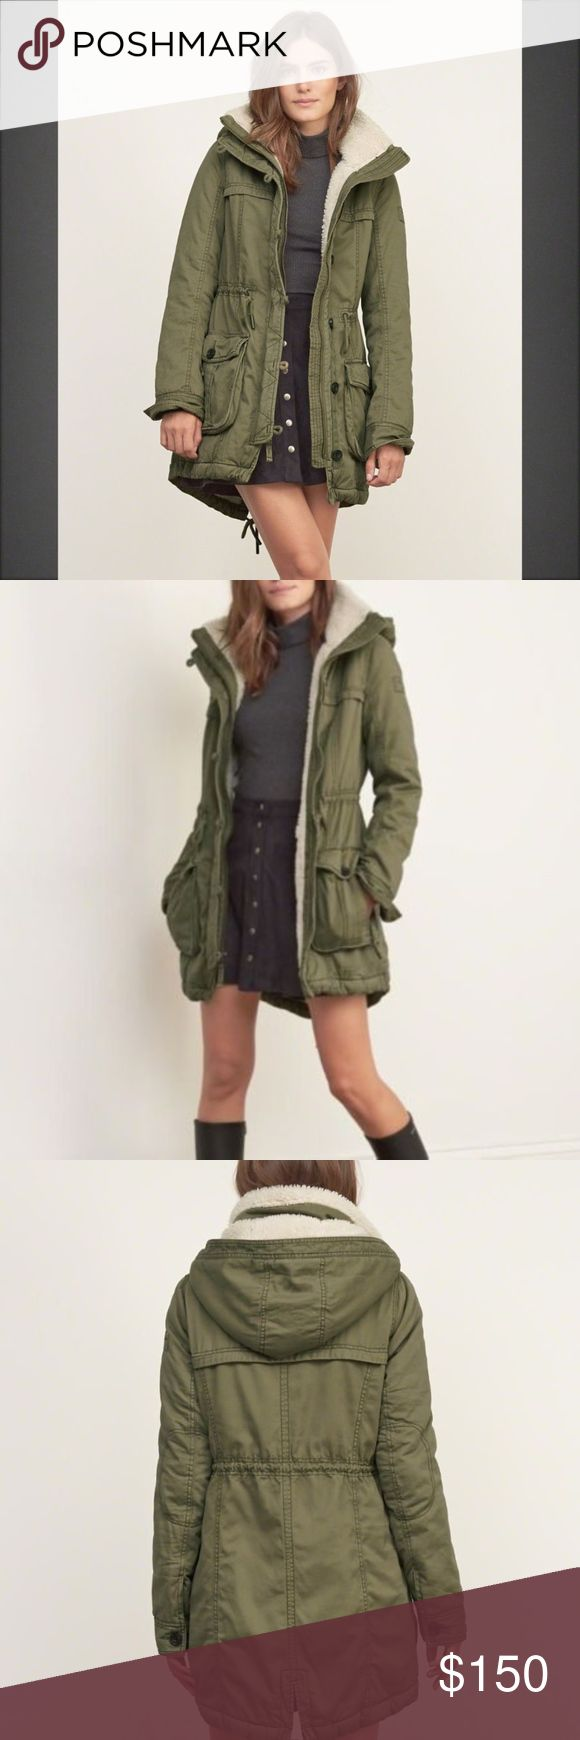 Abercrombie & Fitch Womens Sherpa Lined Jacket Abercrombie and Fitch  Warm and comfortable parka with cozy sherpa lining, a silhouette with a longer length, featuring a removable sherpa lined hood, a button and zipper closure, finished with cinched hem with tie at back, Imported 100% Cotton LARGE NWT Abercrombie & Fitch Jackets & Coats